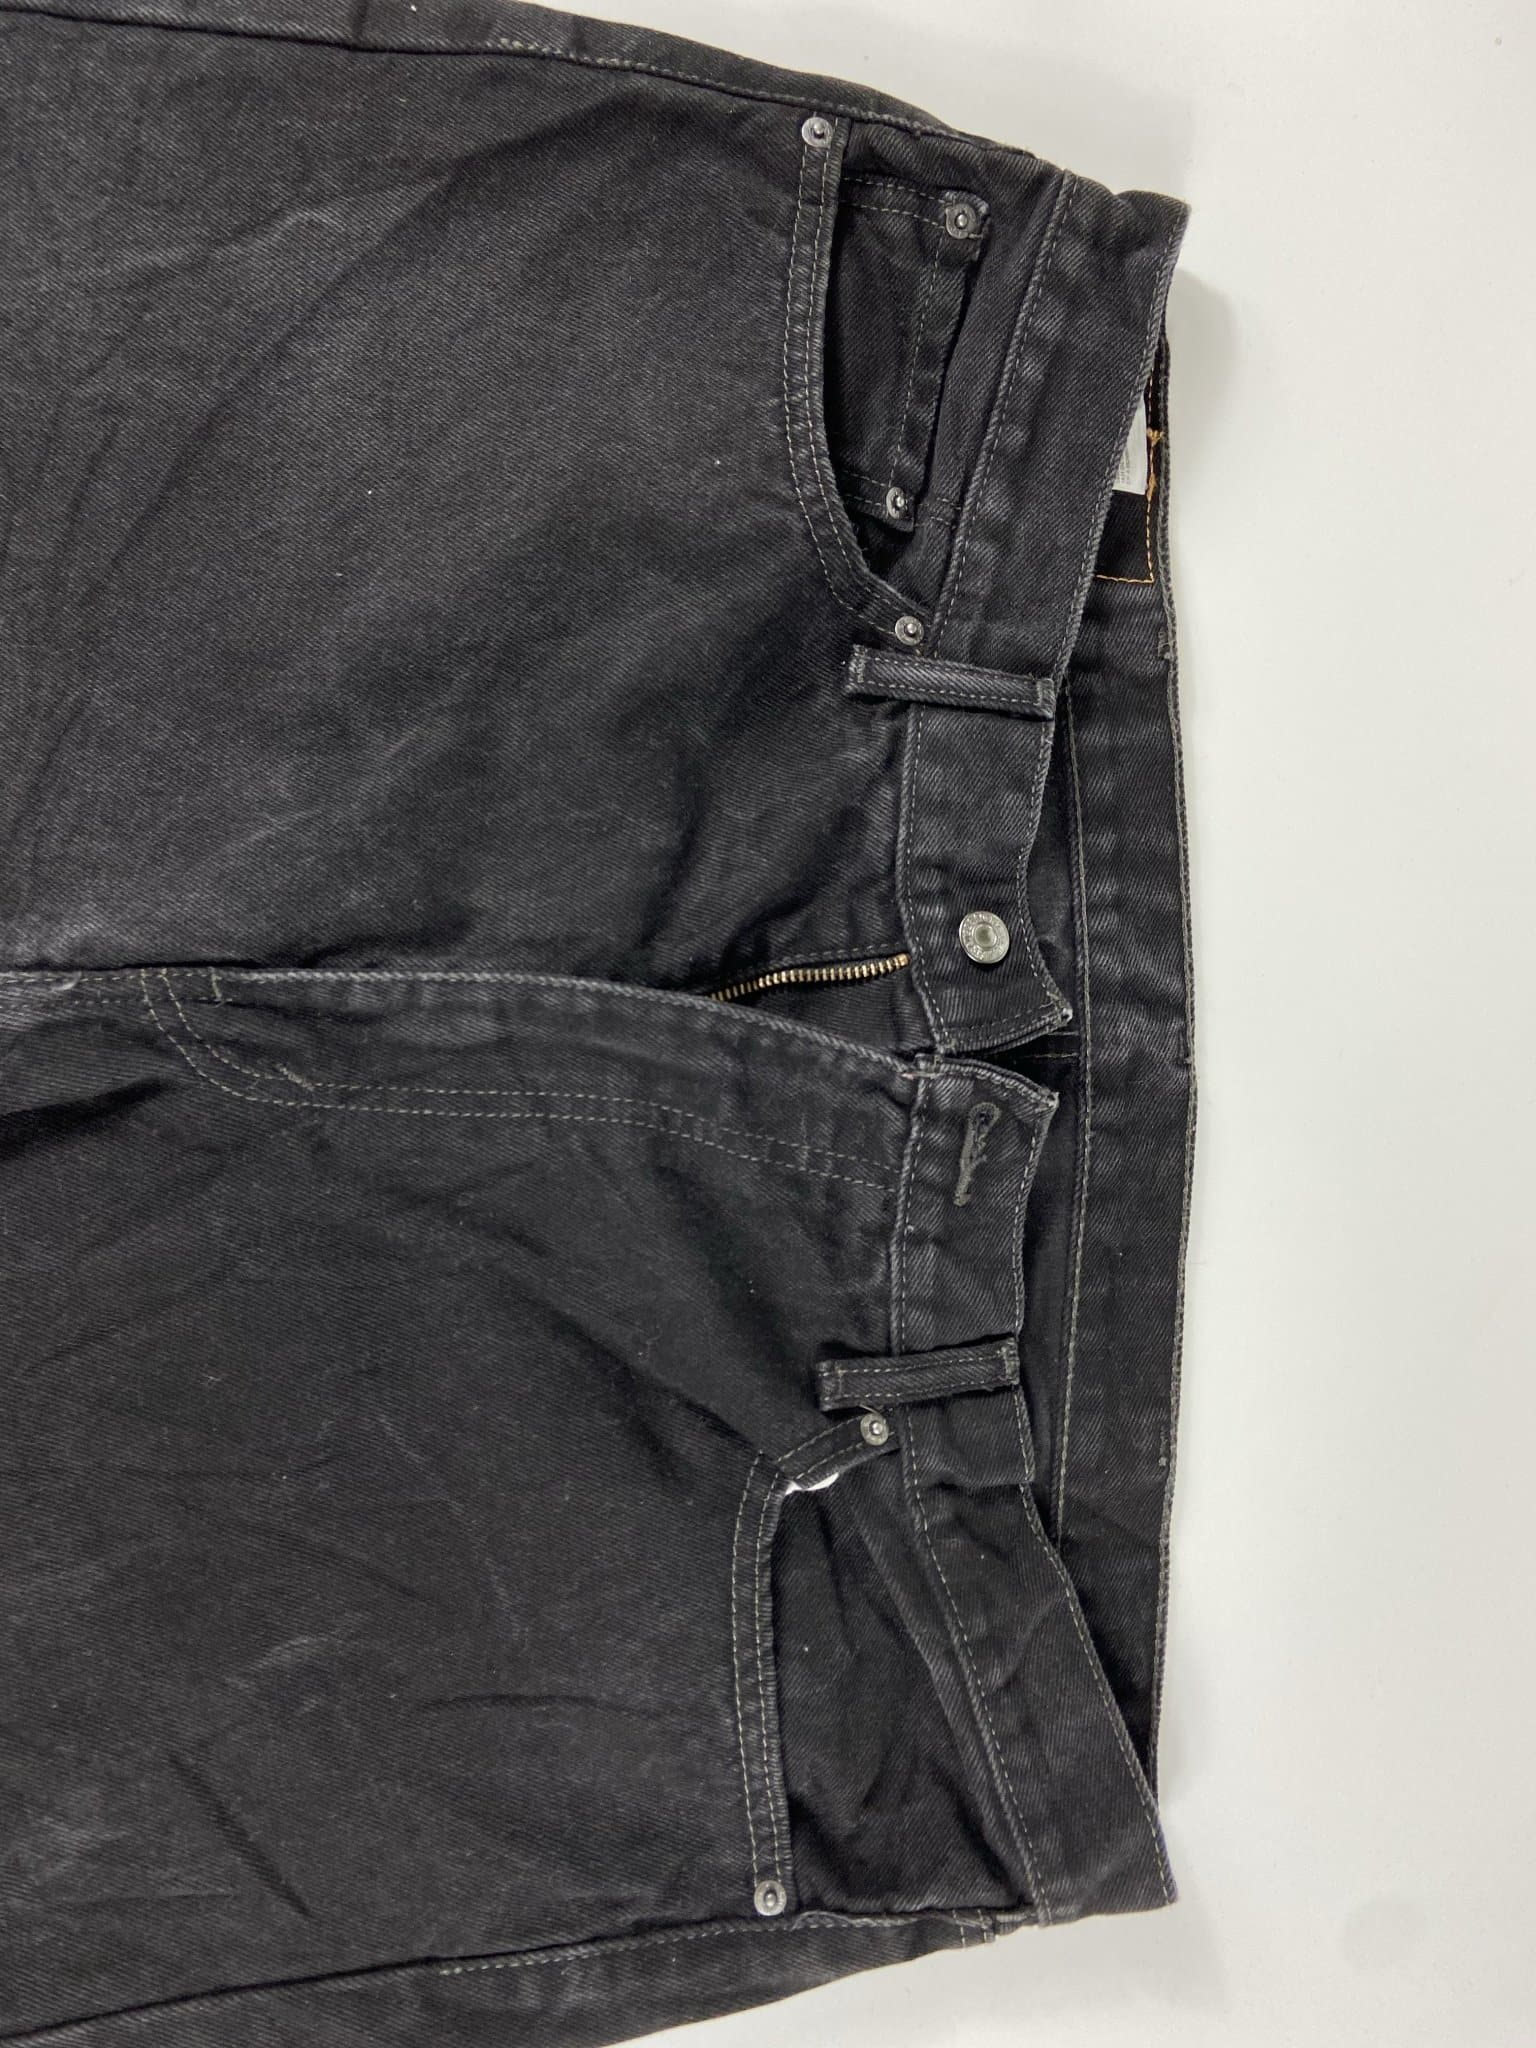 Vintage Levi's 505 Classic Zip Fly Jeans W40 L30 (I11) - Discounted Deals UK